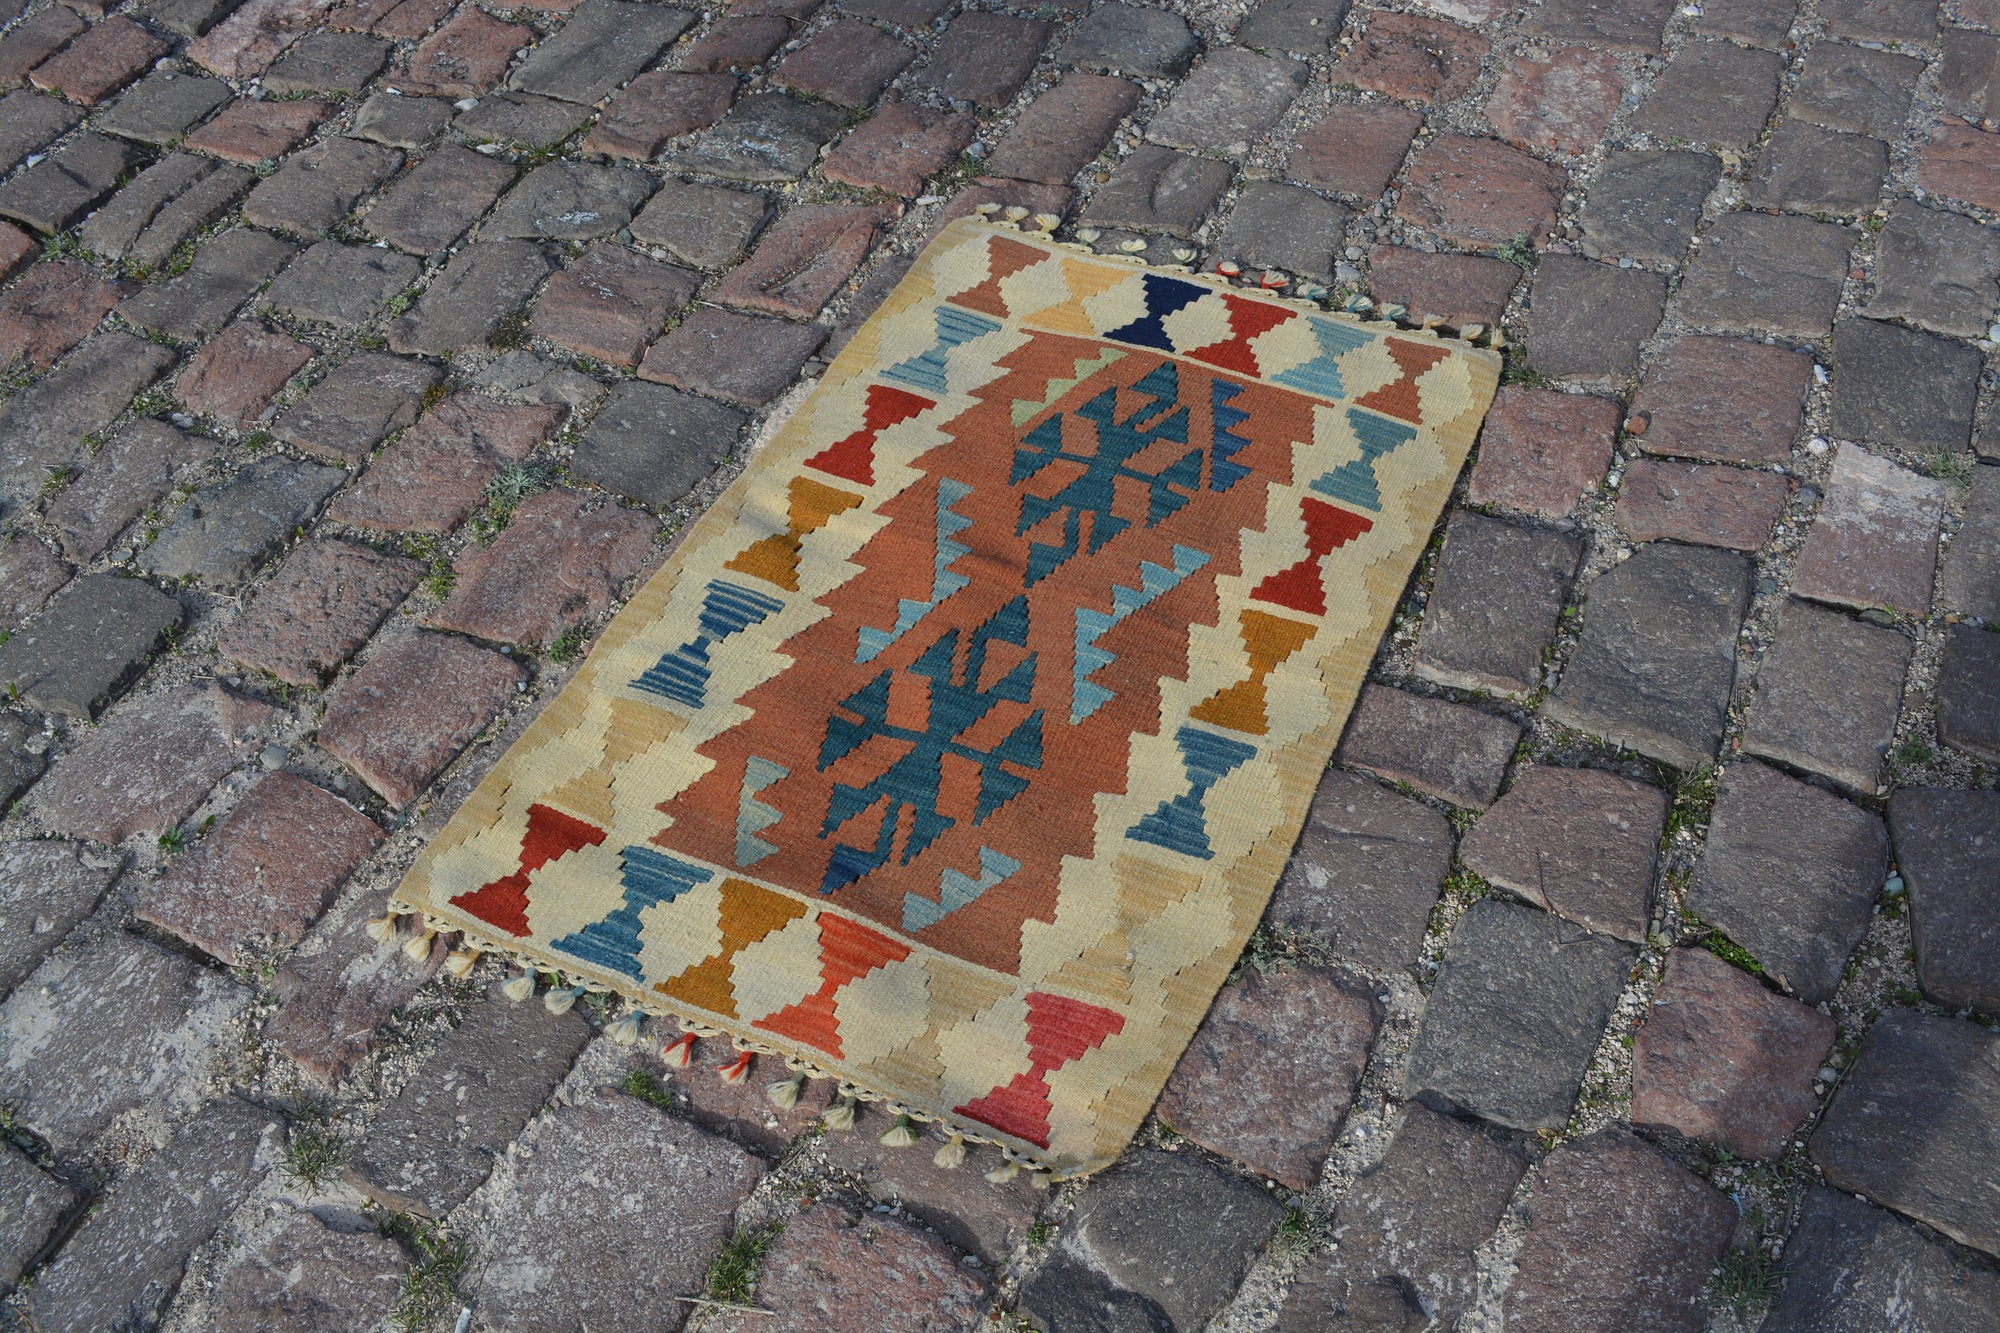 Small Rug, Turkish Rugs, Oriental rug, Entrance rug,  Area rug, Vintage Rugs, Turkish carpet, Doormat rug, Bath Mat rug, 2.3x3.6  Ft AG582